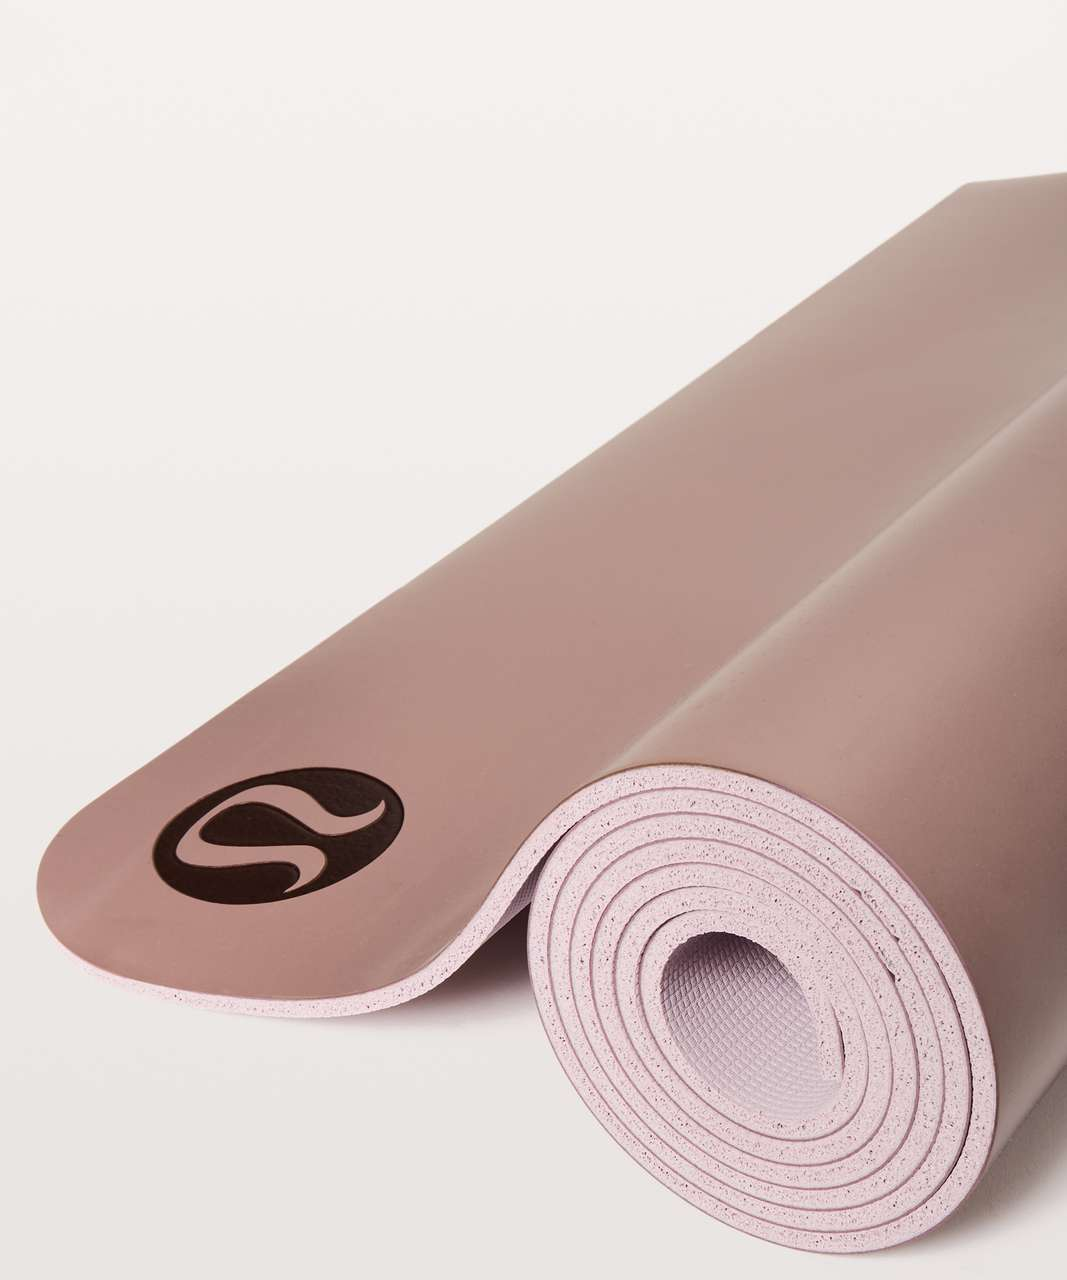 f2c97f8632 Lululemon The Reversible Mat 5mm - Misty Mauve / Porcelain Pink - lulu  fanatics